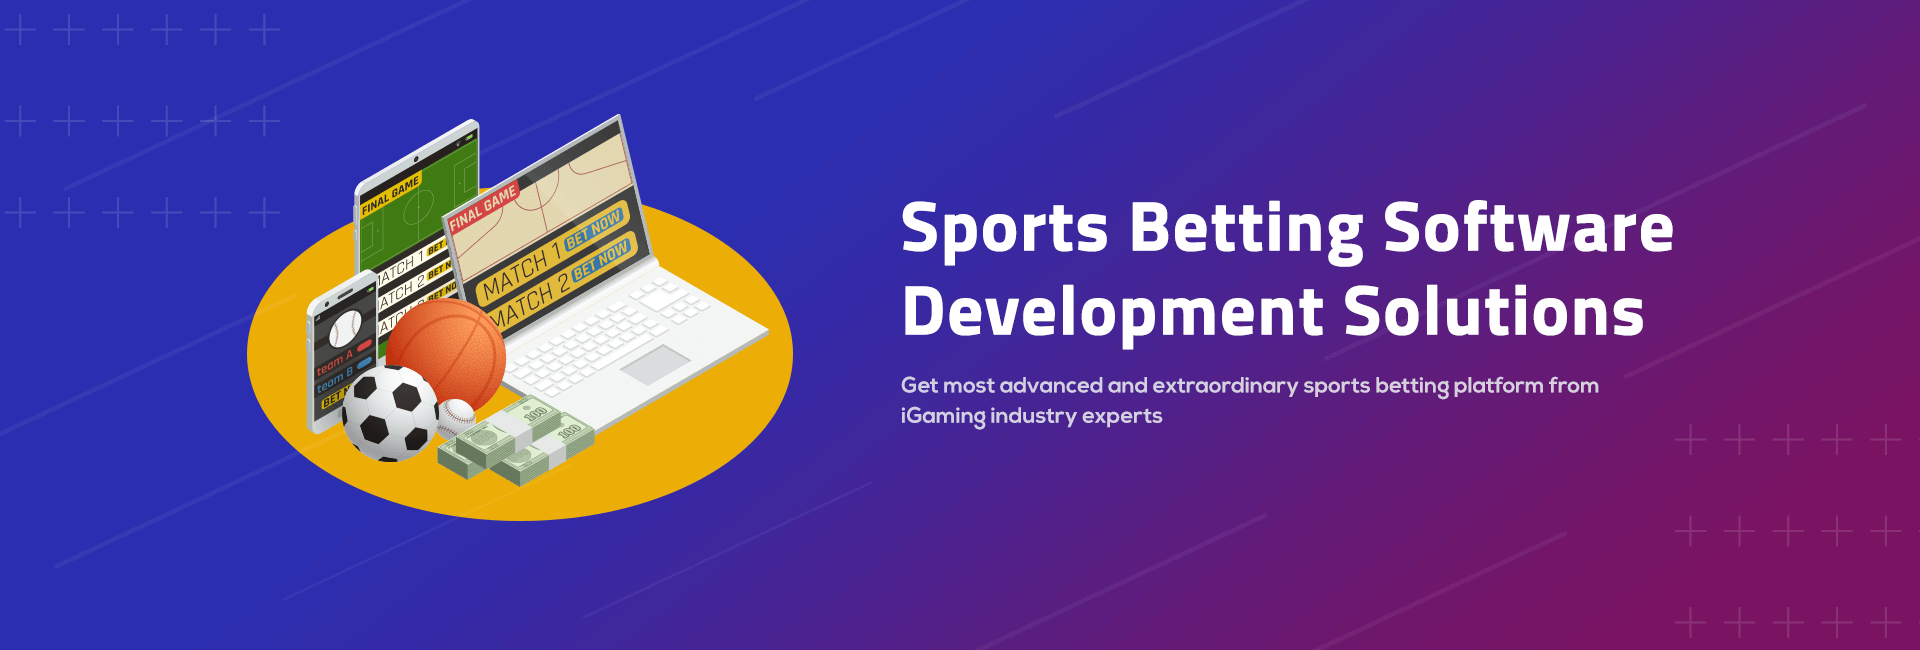 Sports Betting Software Development